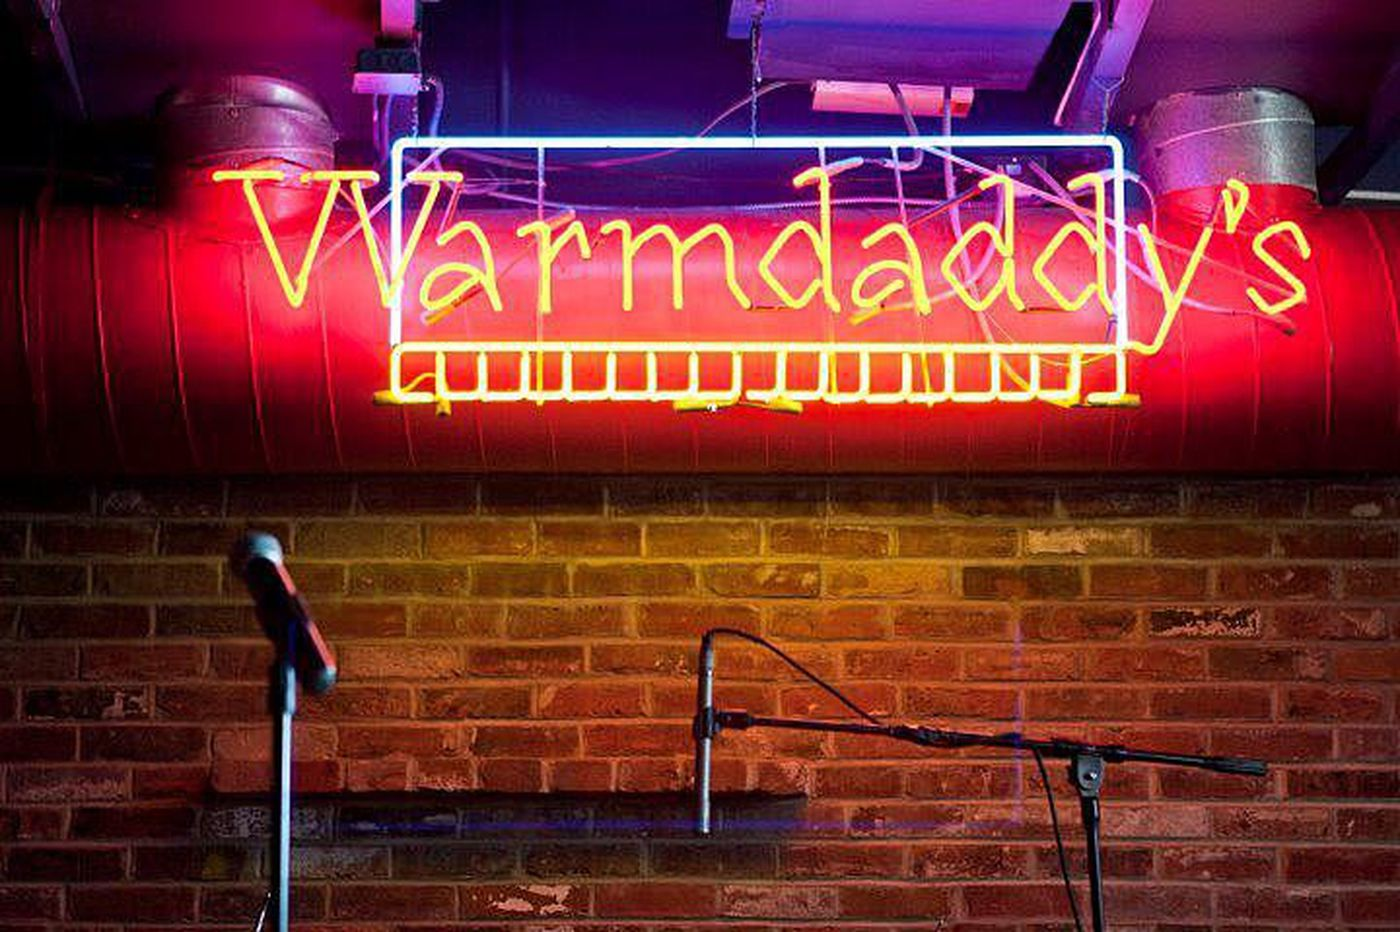 Warmdaddy's, the blues club, closes after 25 years, joining the list of coronavirus shutdowns